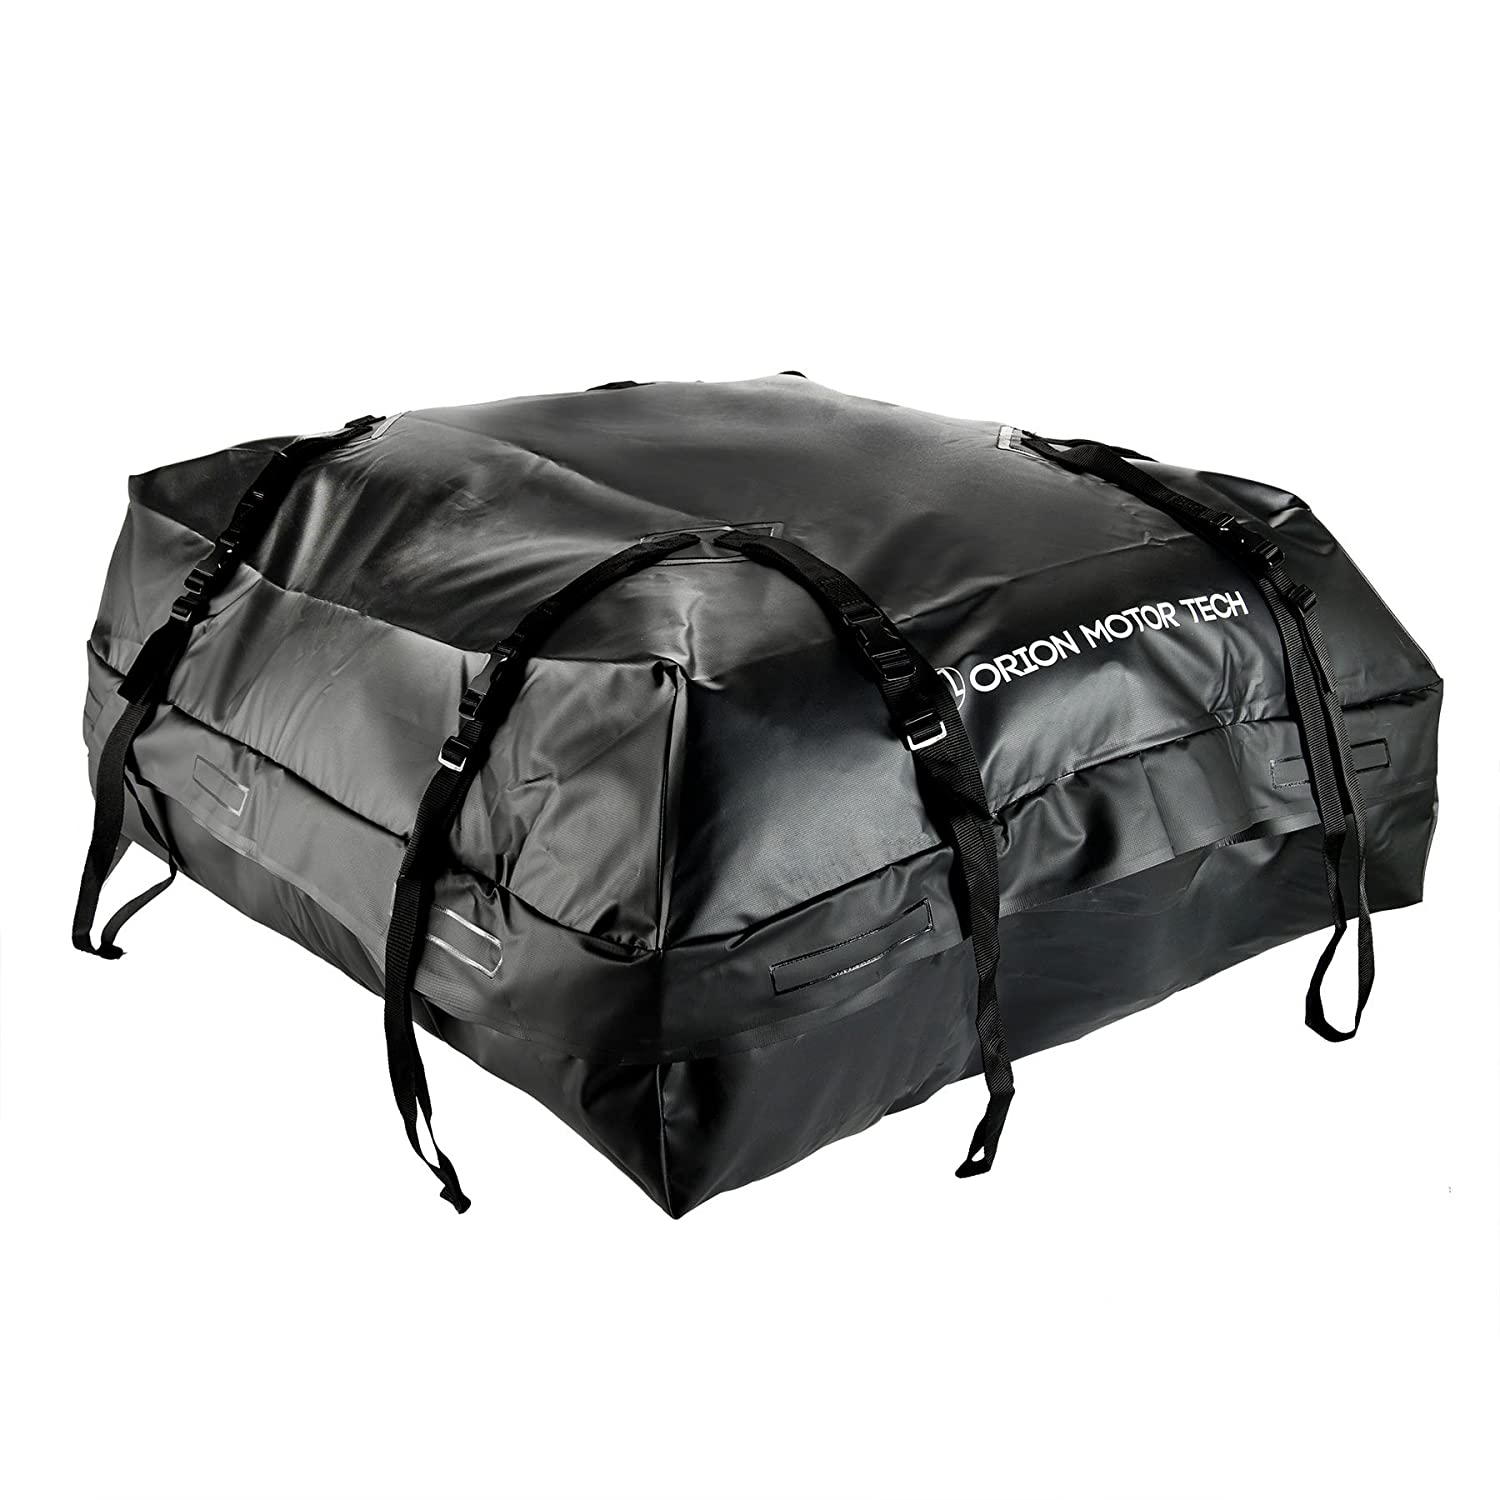 OrionMotorTech 15 Cubic Feet Waterproof Car Rooftop Cargo Carrier Storage Bag, Fit Any Car/Van/SUVs with Roof Rails, Easy to Install with Durable Wide Straps